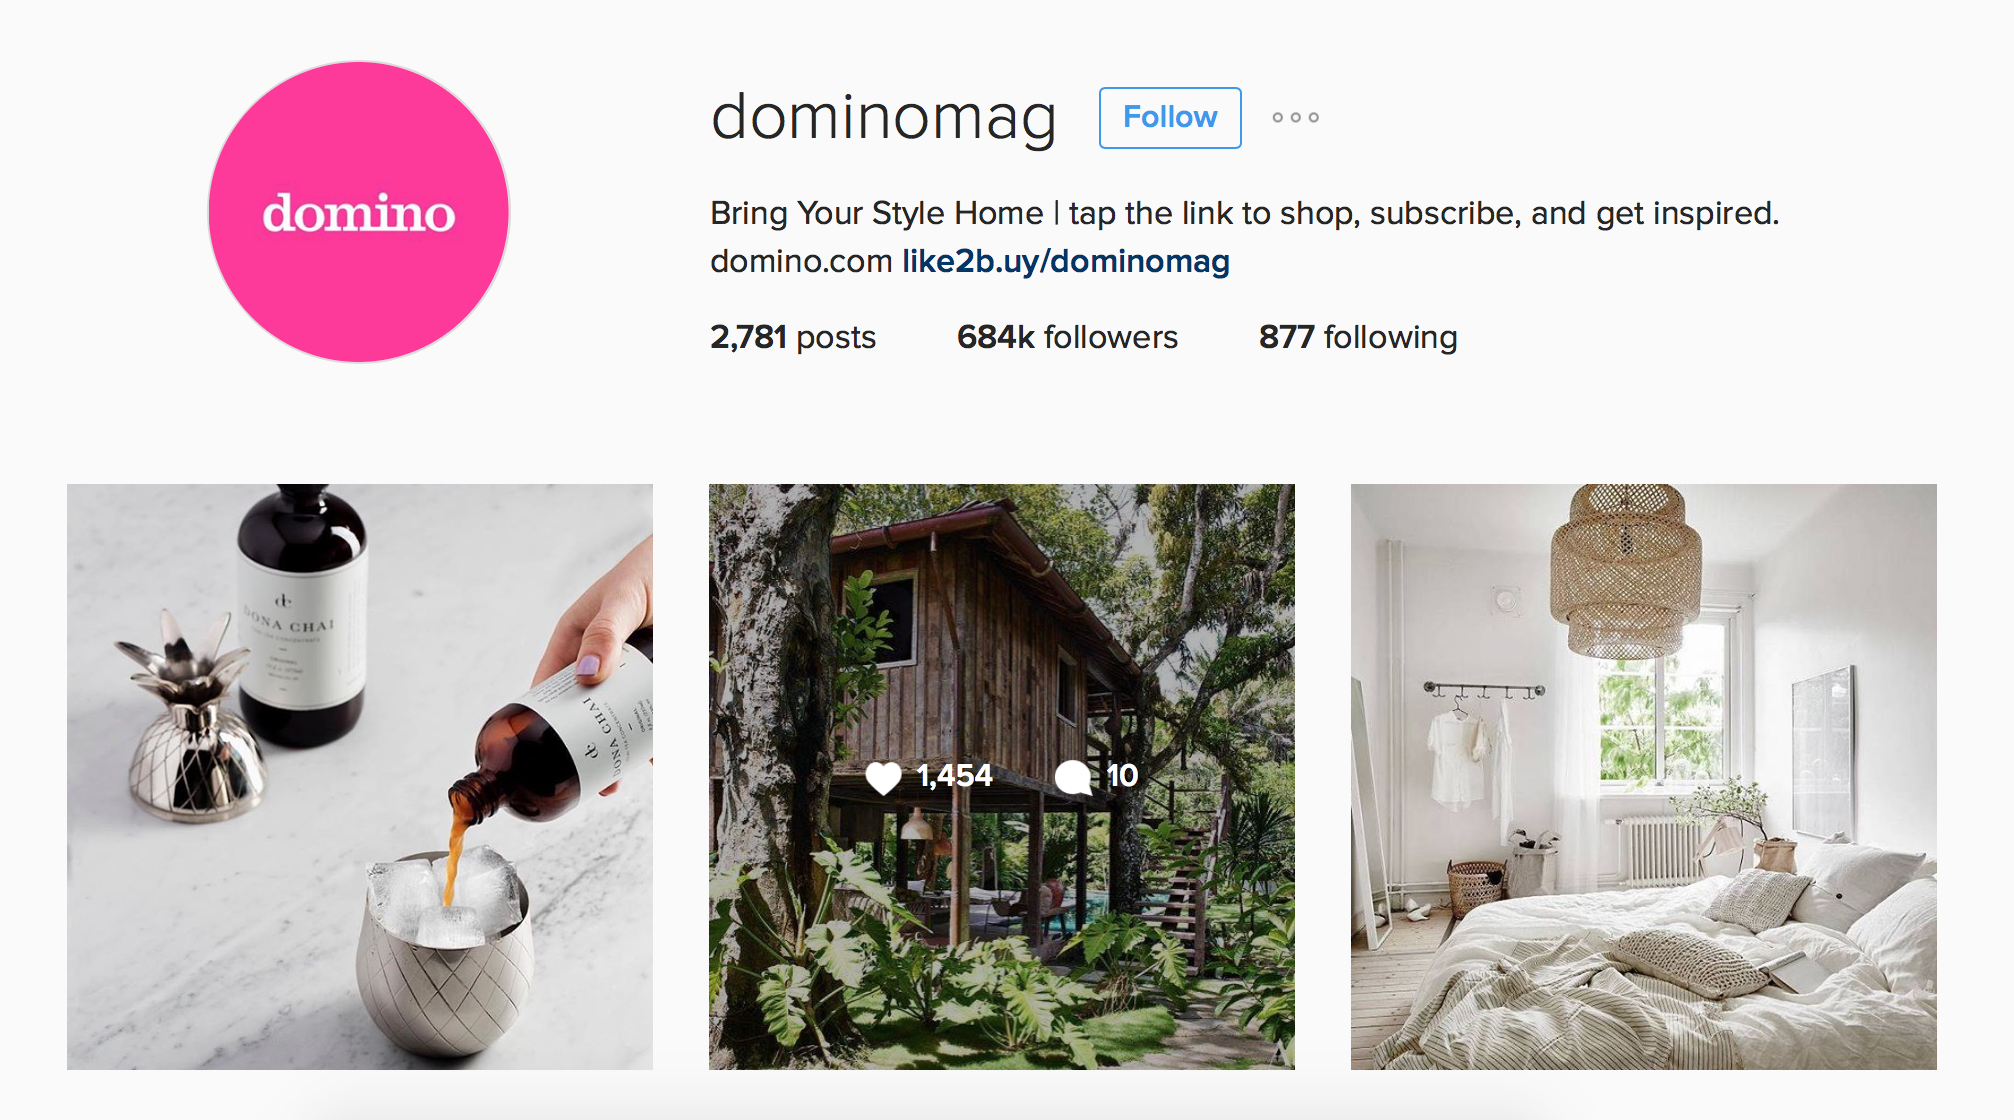 use of Instagram feed as a online storefront